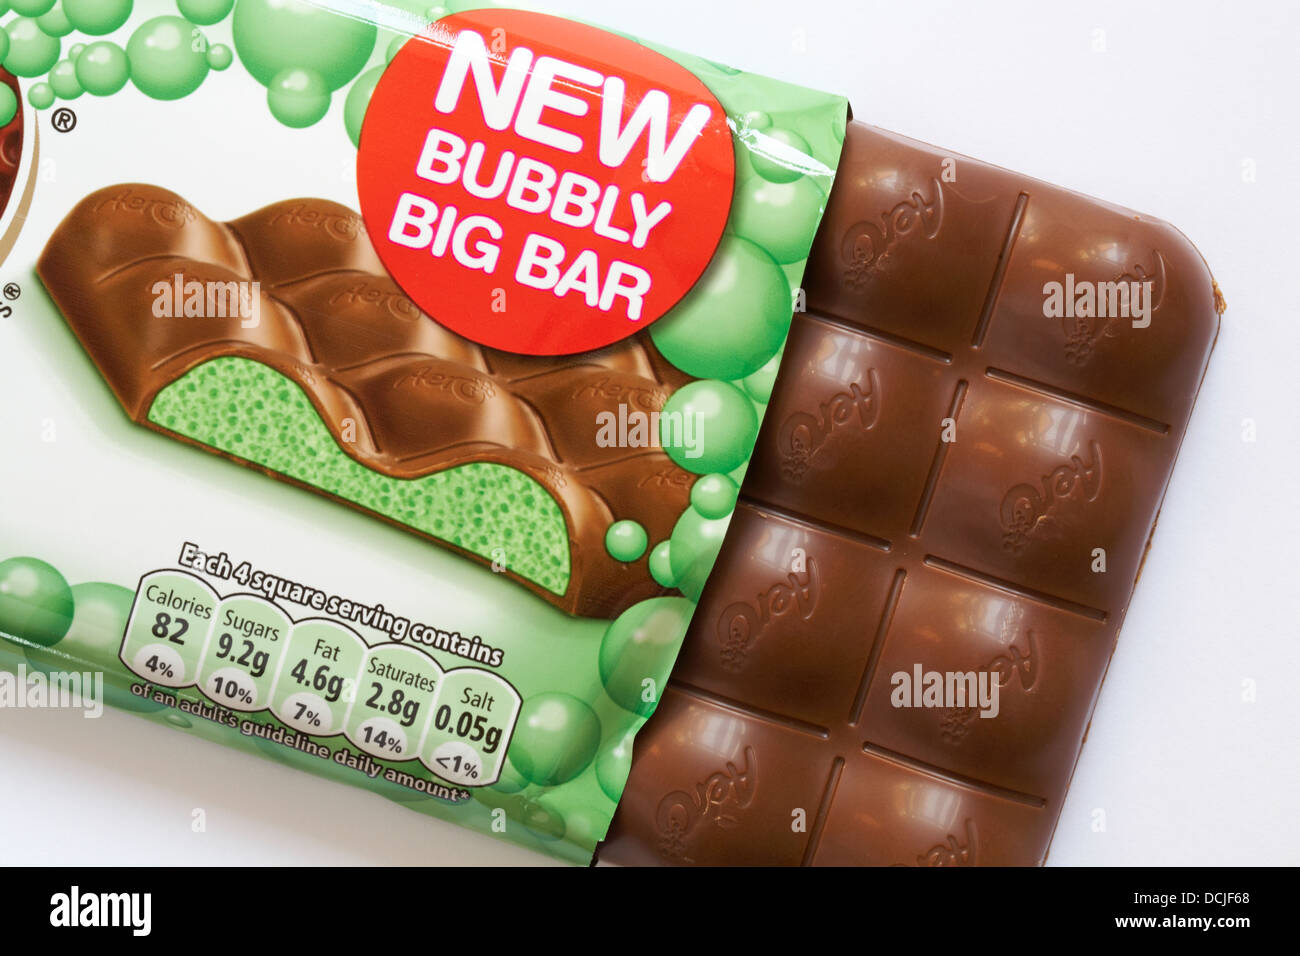 Nestle Mint aero new bubbly big bar of chocolate with contents showing outside of wrapper set on white background - Stock Image